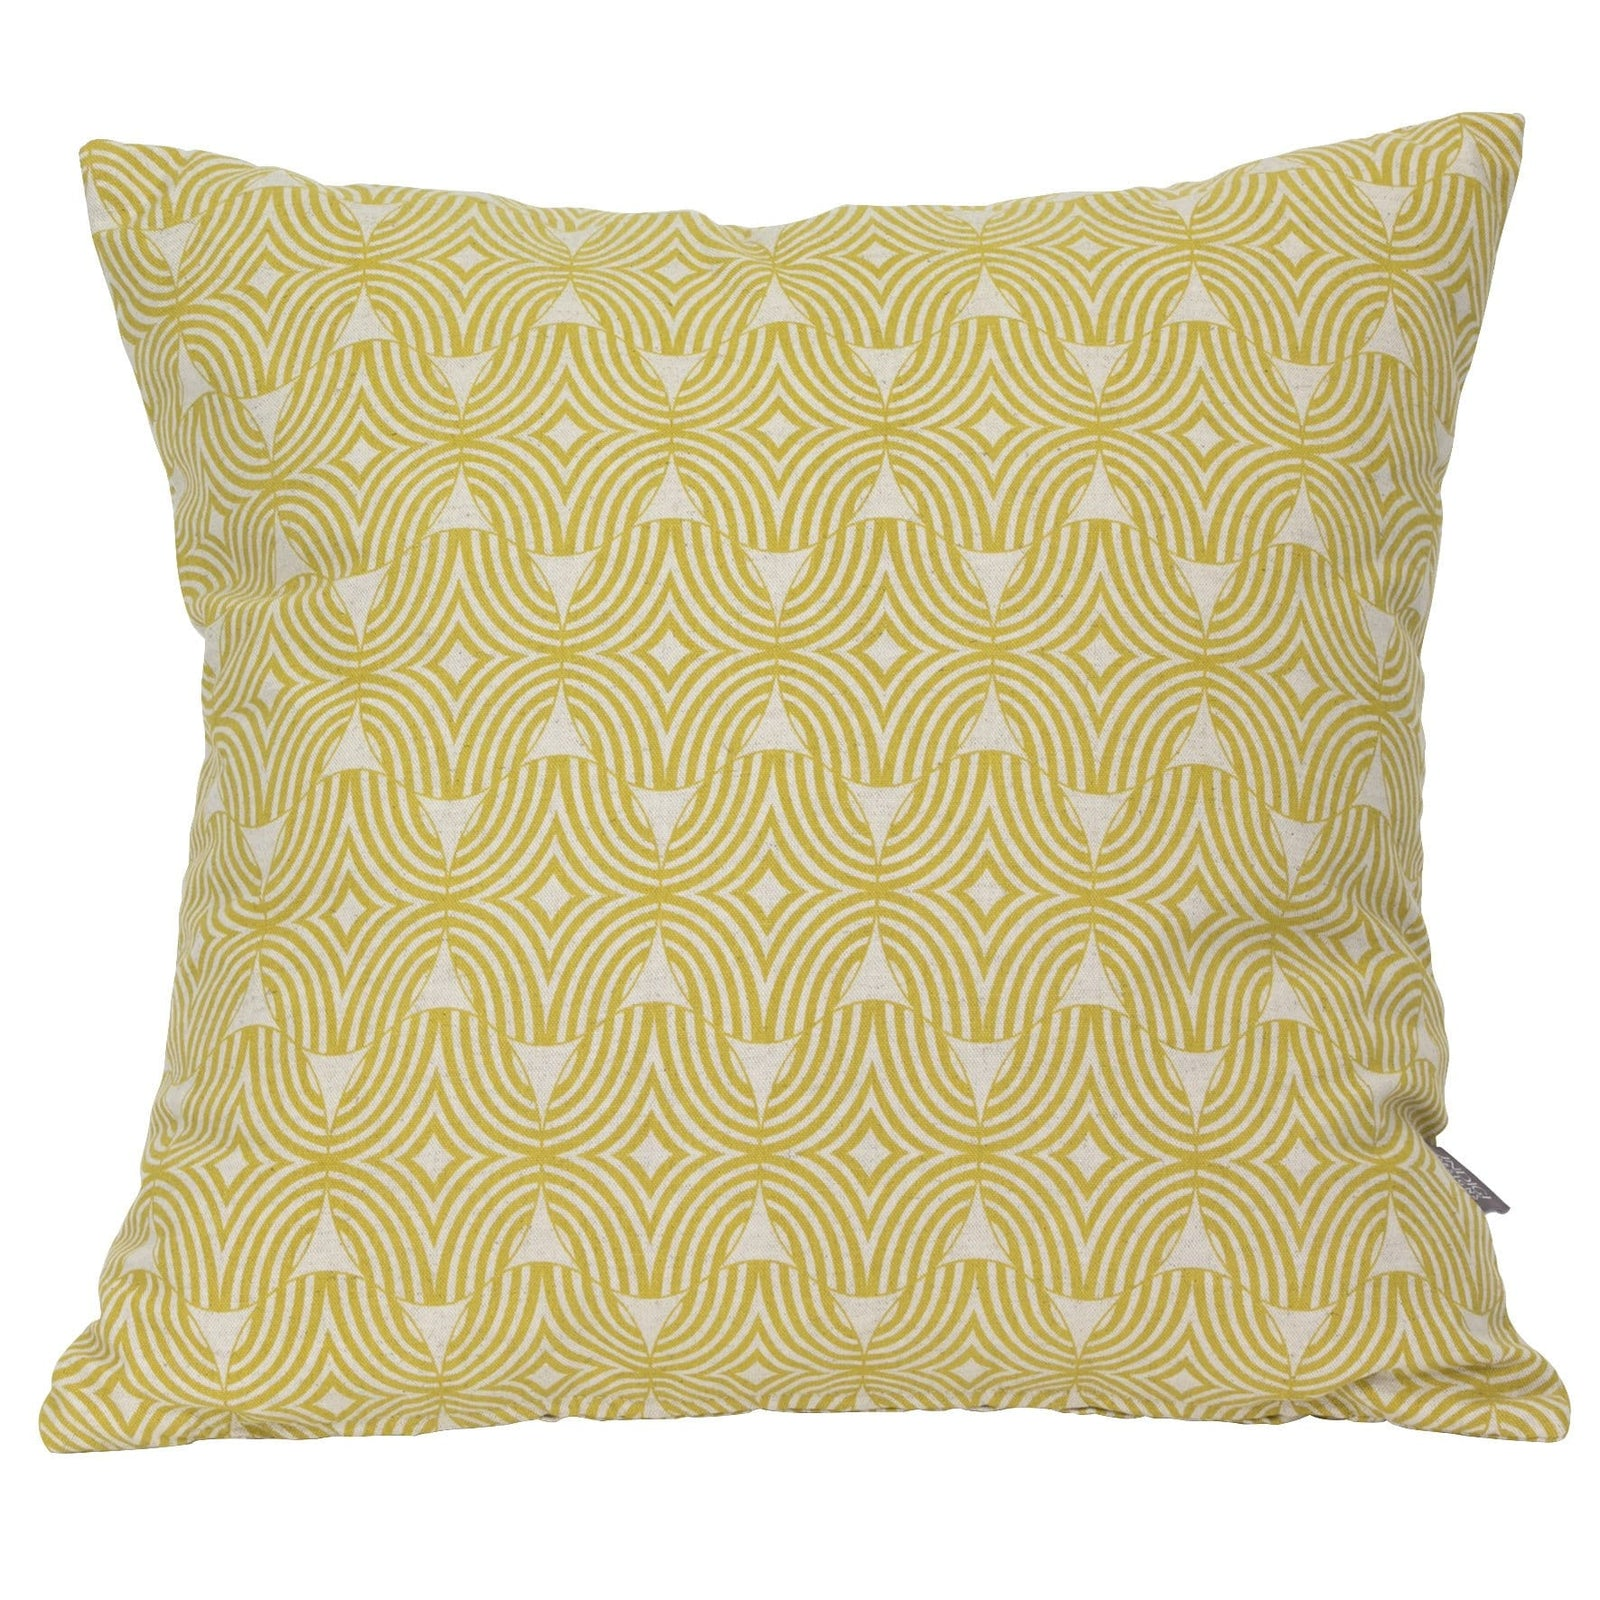 Shields Ochre Cushion Cover